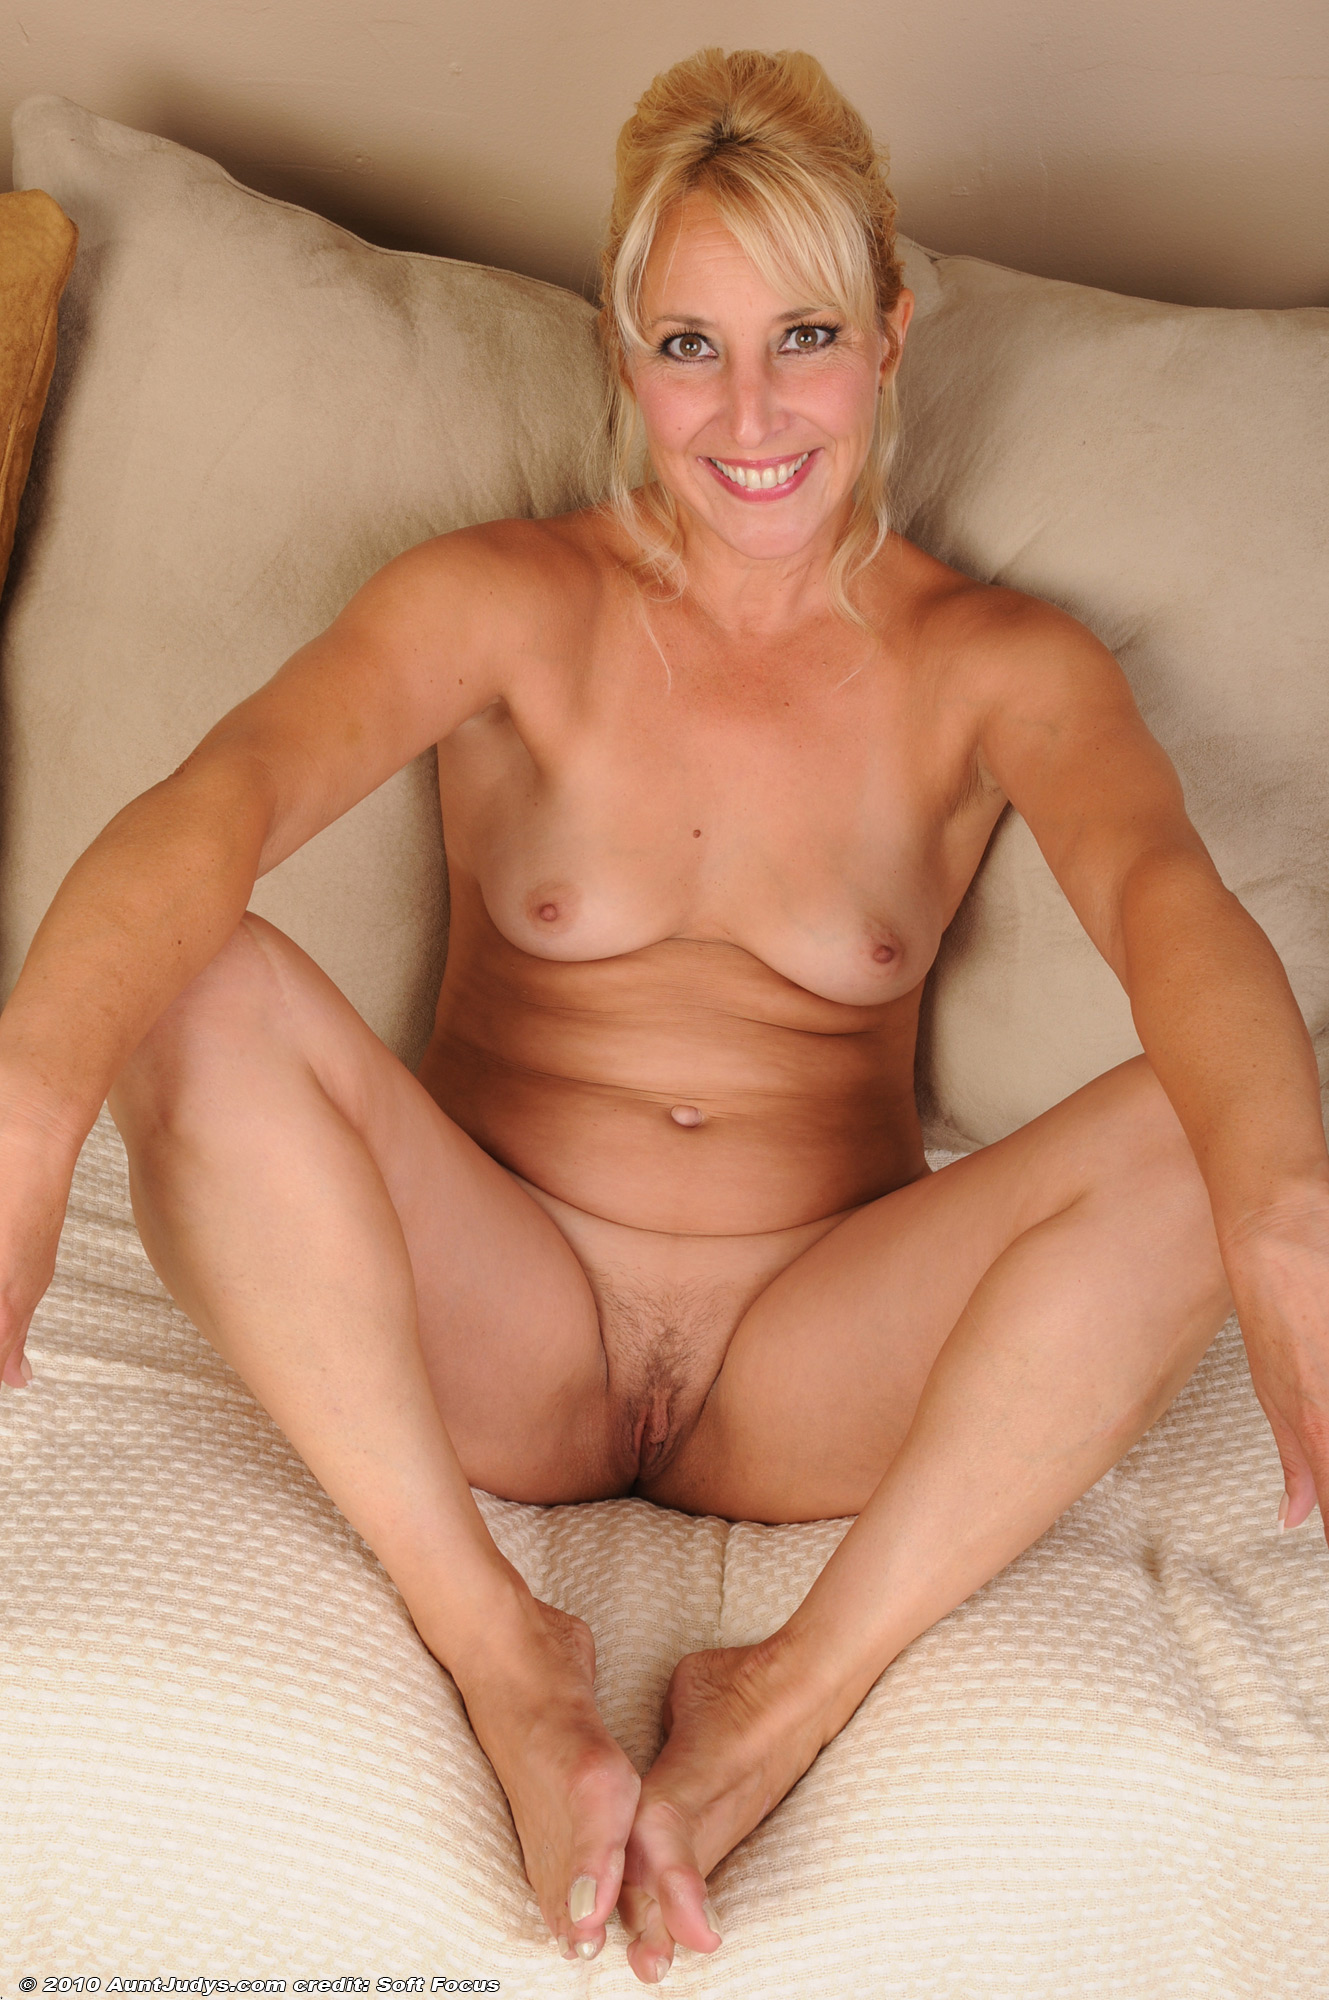 Amateur sexy mature women are